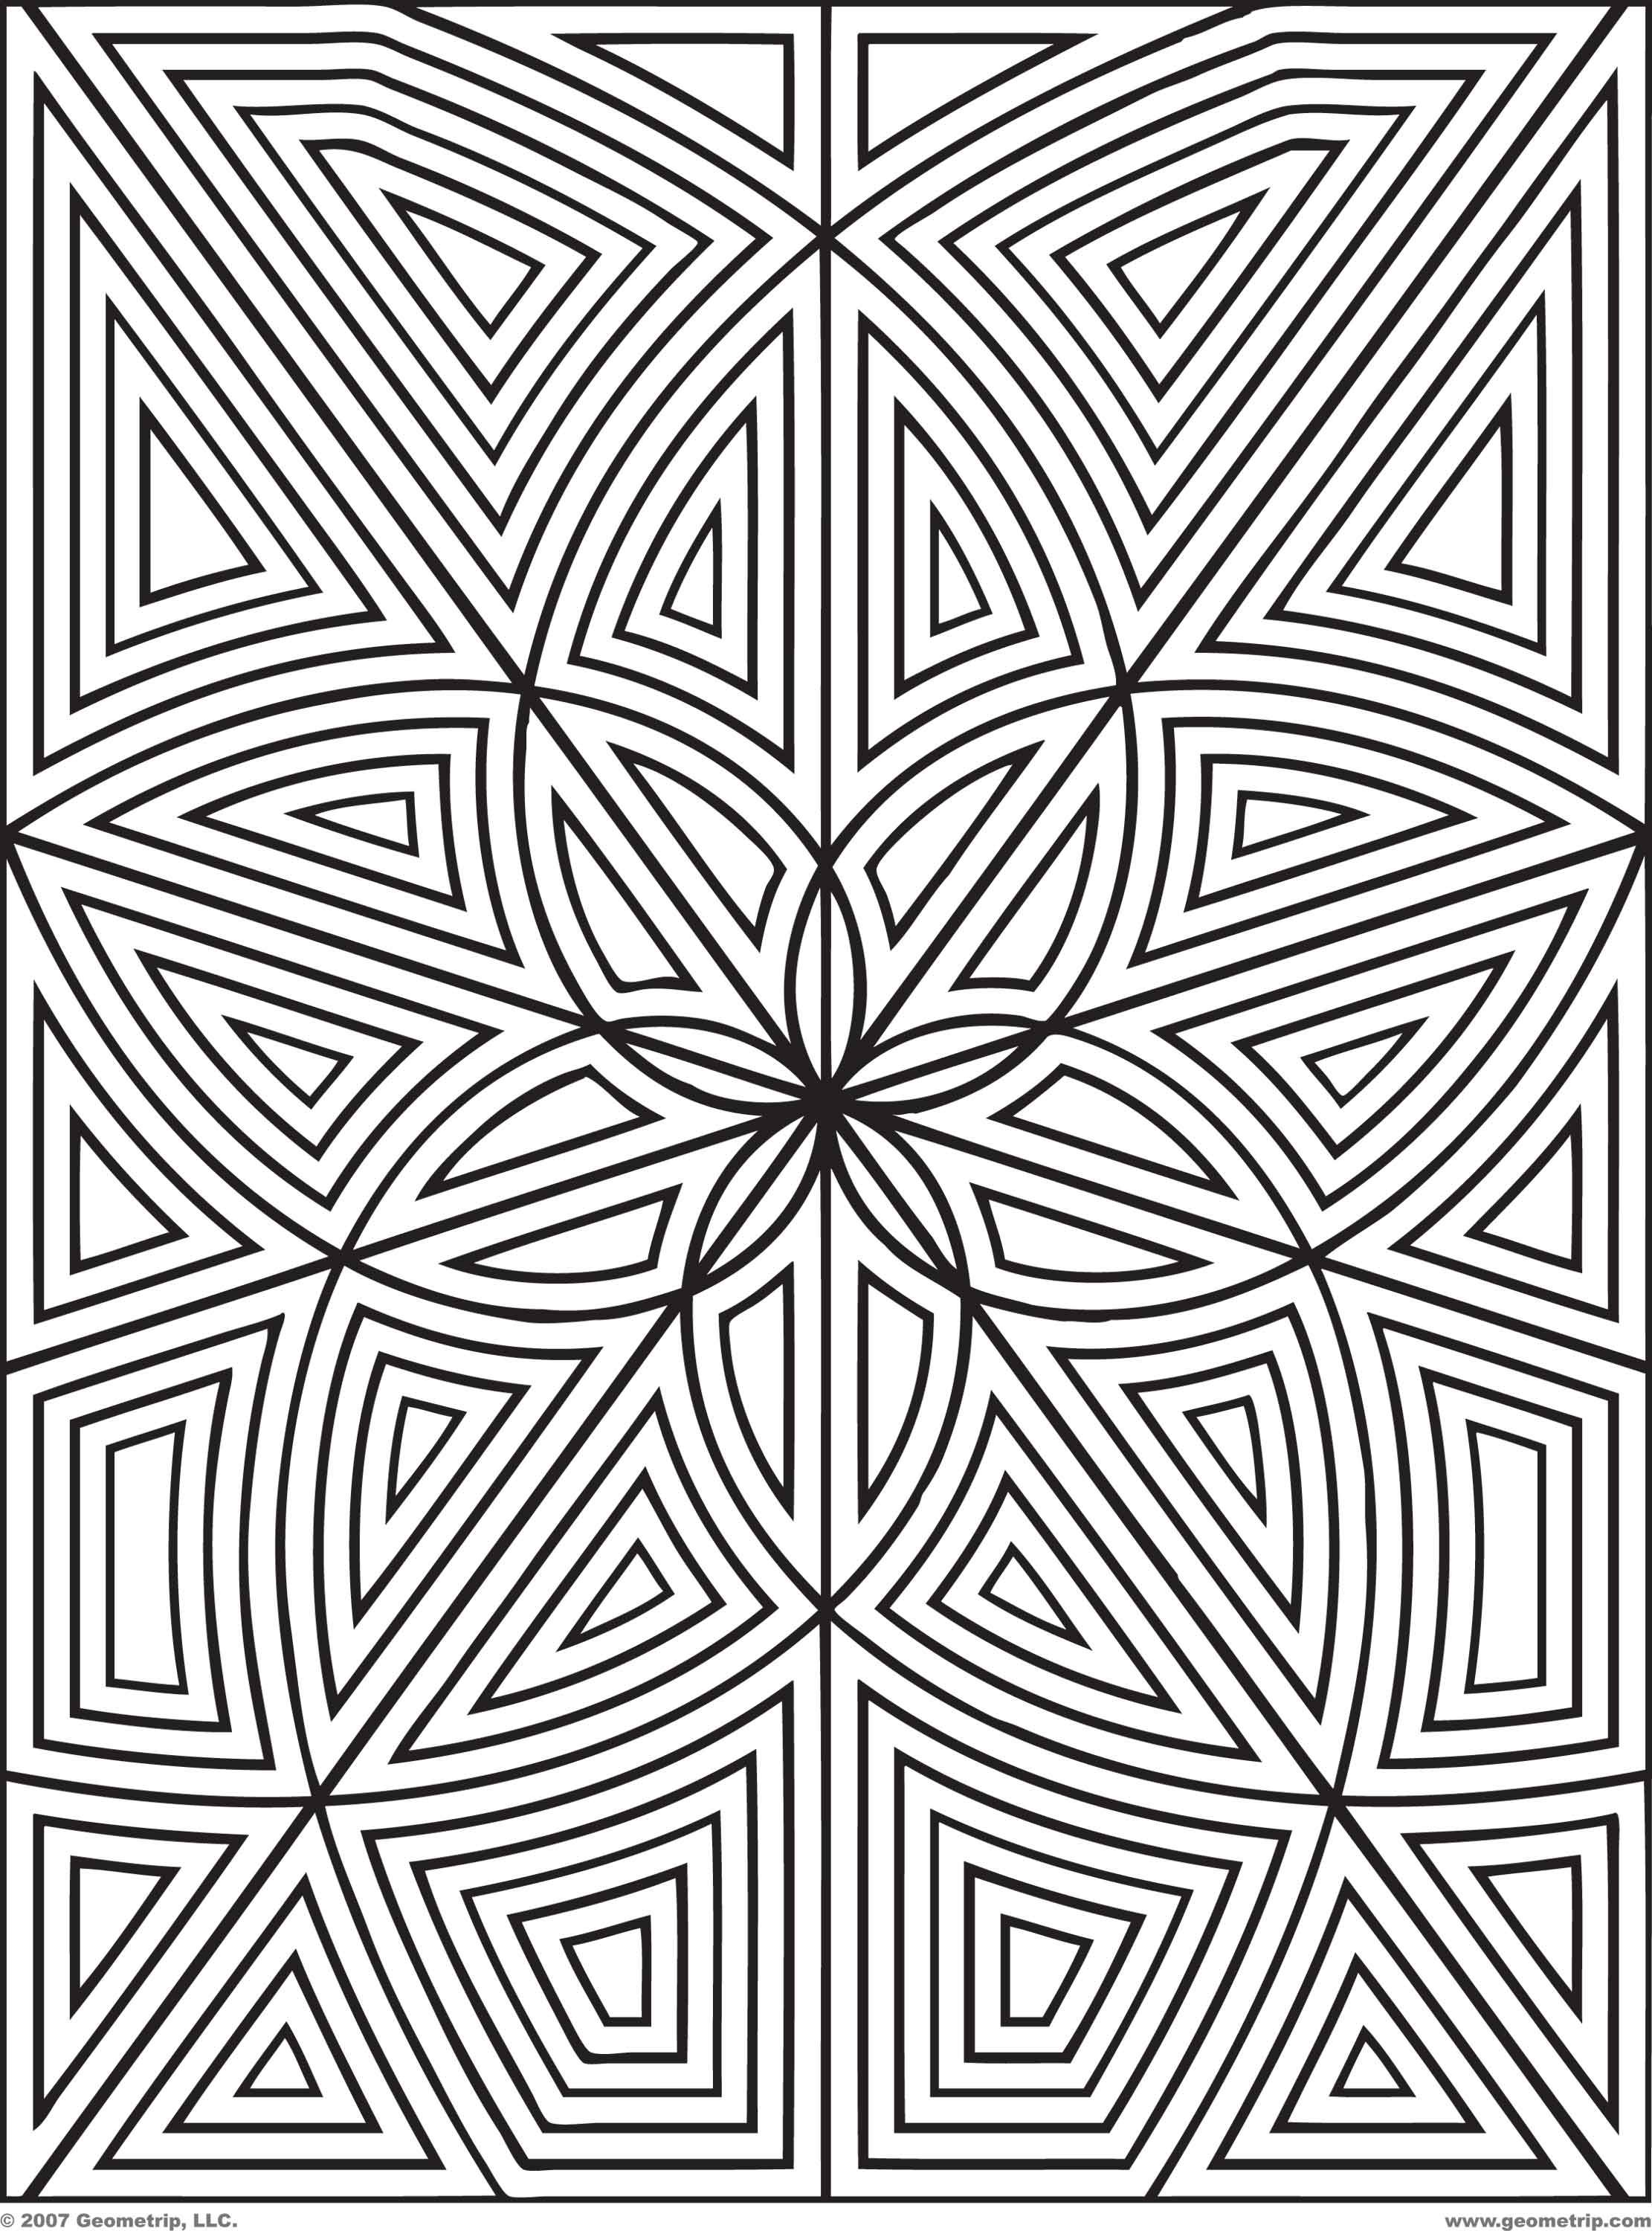 Free coloring pages kaleidoscope designs - Coloring Page Shape Geometric Designs Another Picture And Gallery About Free Design Coloring Pages Adult Coloring Pages Print Cool Designs To Color Color